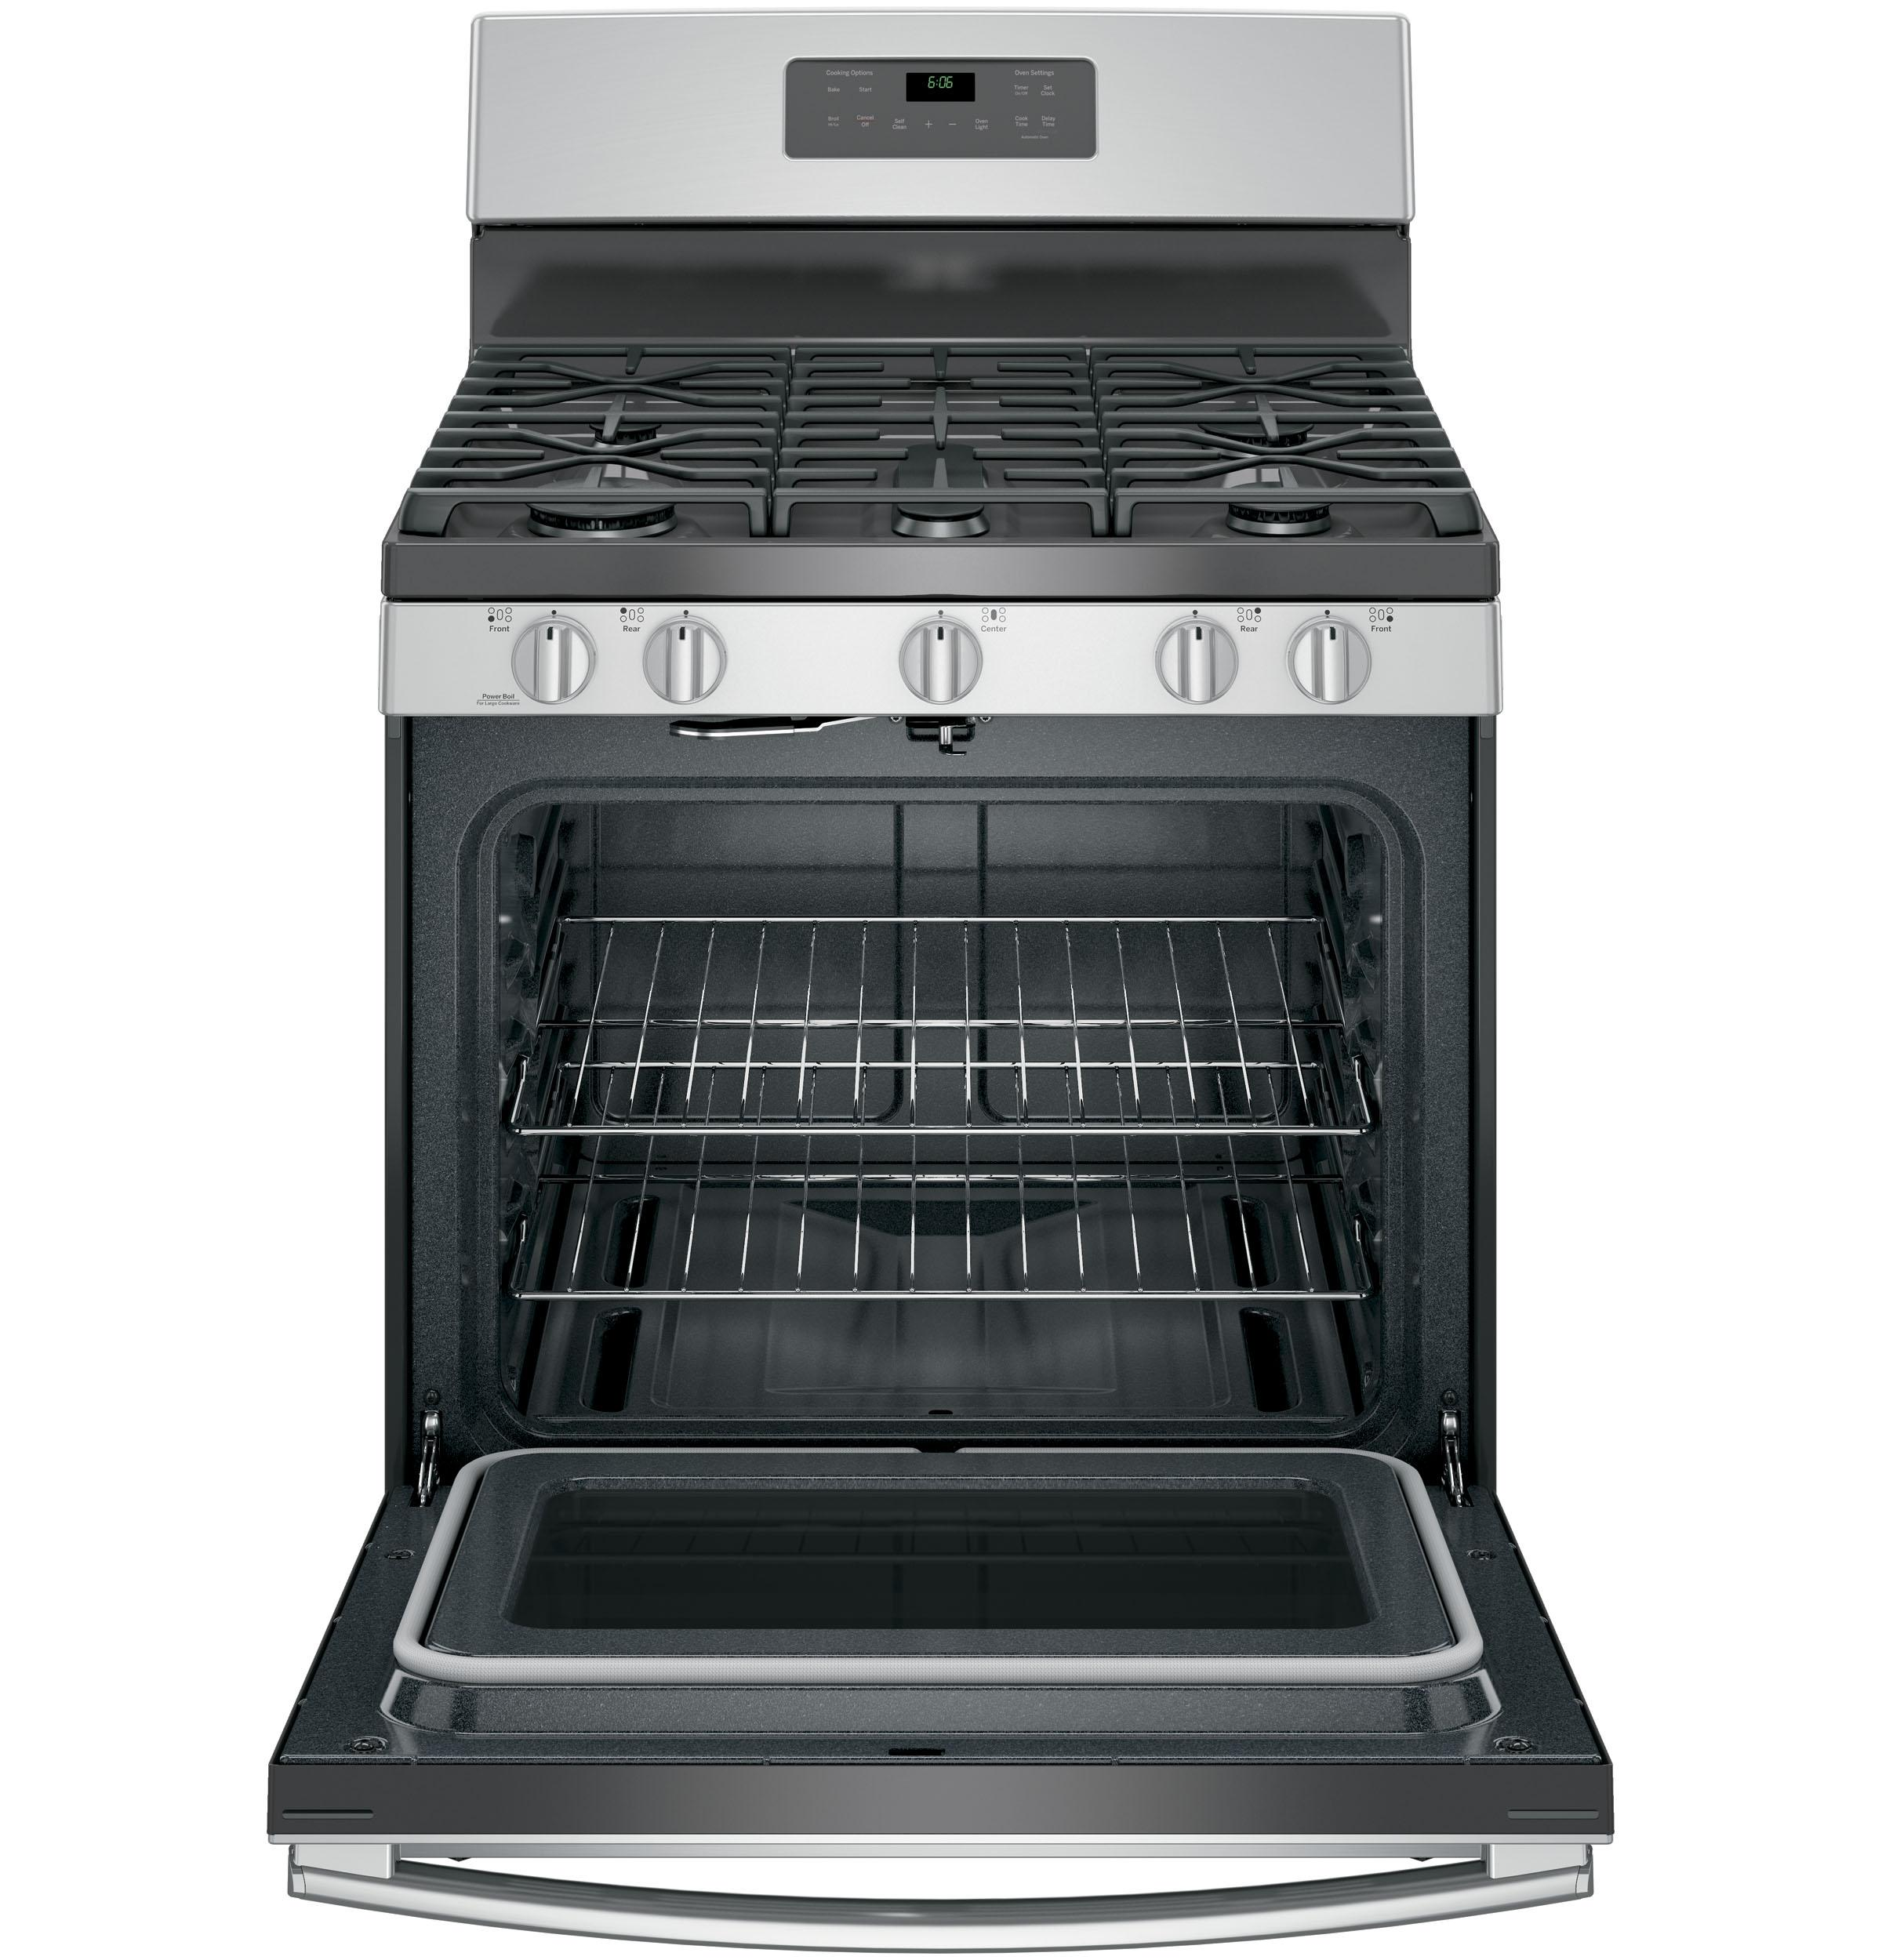 Electric Oven Open ~ Jgb sejss general electric gas ranges